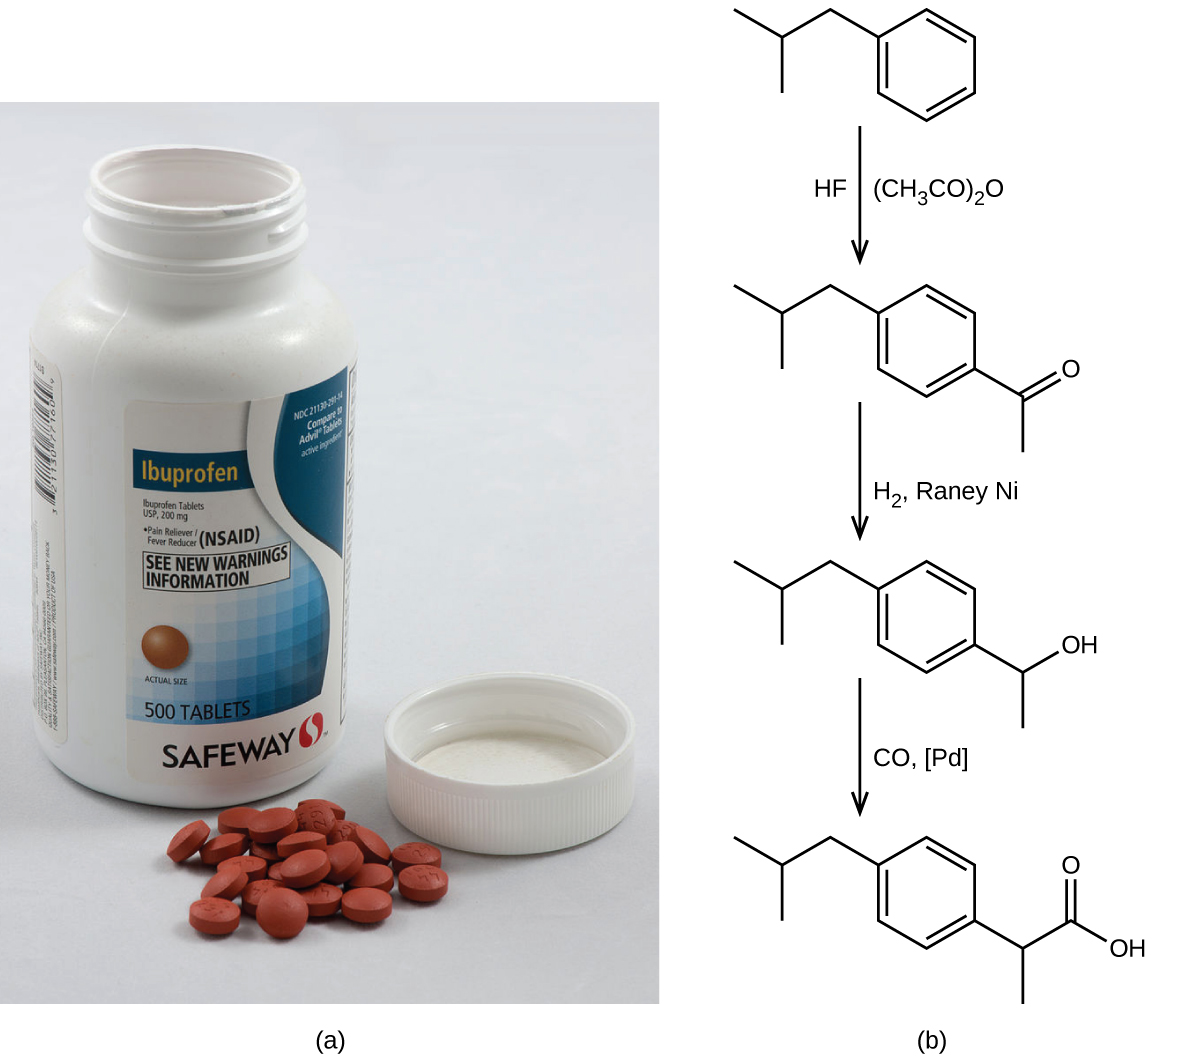 "This figure is labeled, ""a,"" and, ""b."" Part a shows an open bottle of ibuprofen and a small pile of ibuprofen tablets beside it. Part b shows a reaction along with line structures. The first line structure looks like a diagonal line pointing down and to the right, then up and to the right and then down and to the right. At this point it connects to a hexagon with alternating double bonds. At the first trough there is a line that points straight down. From this structure, there is an arrow pointing downward. The arrow is labeled, ""H F,"" on the left and ""( C H subscript 3 C O ) subscript 2 O,"" on the right. The next line structure looks exactly like the first line structure, but it has a line angled down and to the right from the lower right point of the hexagon. This line is connected to another line which points straight down. Where these two lines meet, there is a double bond to an O atom. There is another arrow pointing downward, and it is labeled, ""H subscript 2, Raney N i."" The next structure looks very similar to the second, previous structure, except in place of the double bonded O, there is a singly bonded O H group. There is a final reaction arrow pointing downward, and it is labeled, ""C O, [ P d ]."" The final structure is similar to the third, previous structure except in place of the O H group, there is another line that points down and to the right to an O H group. At these two lines, there is a double bonded O."